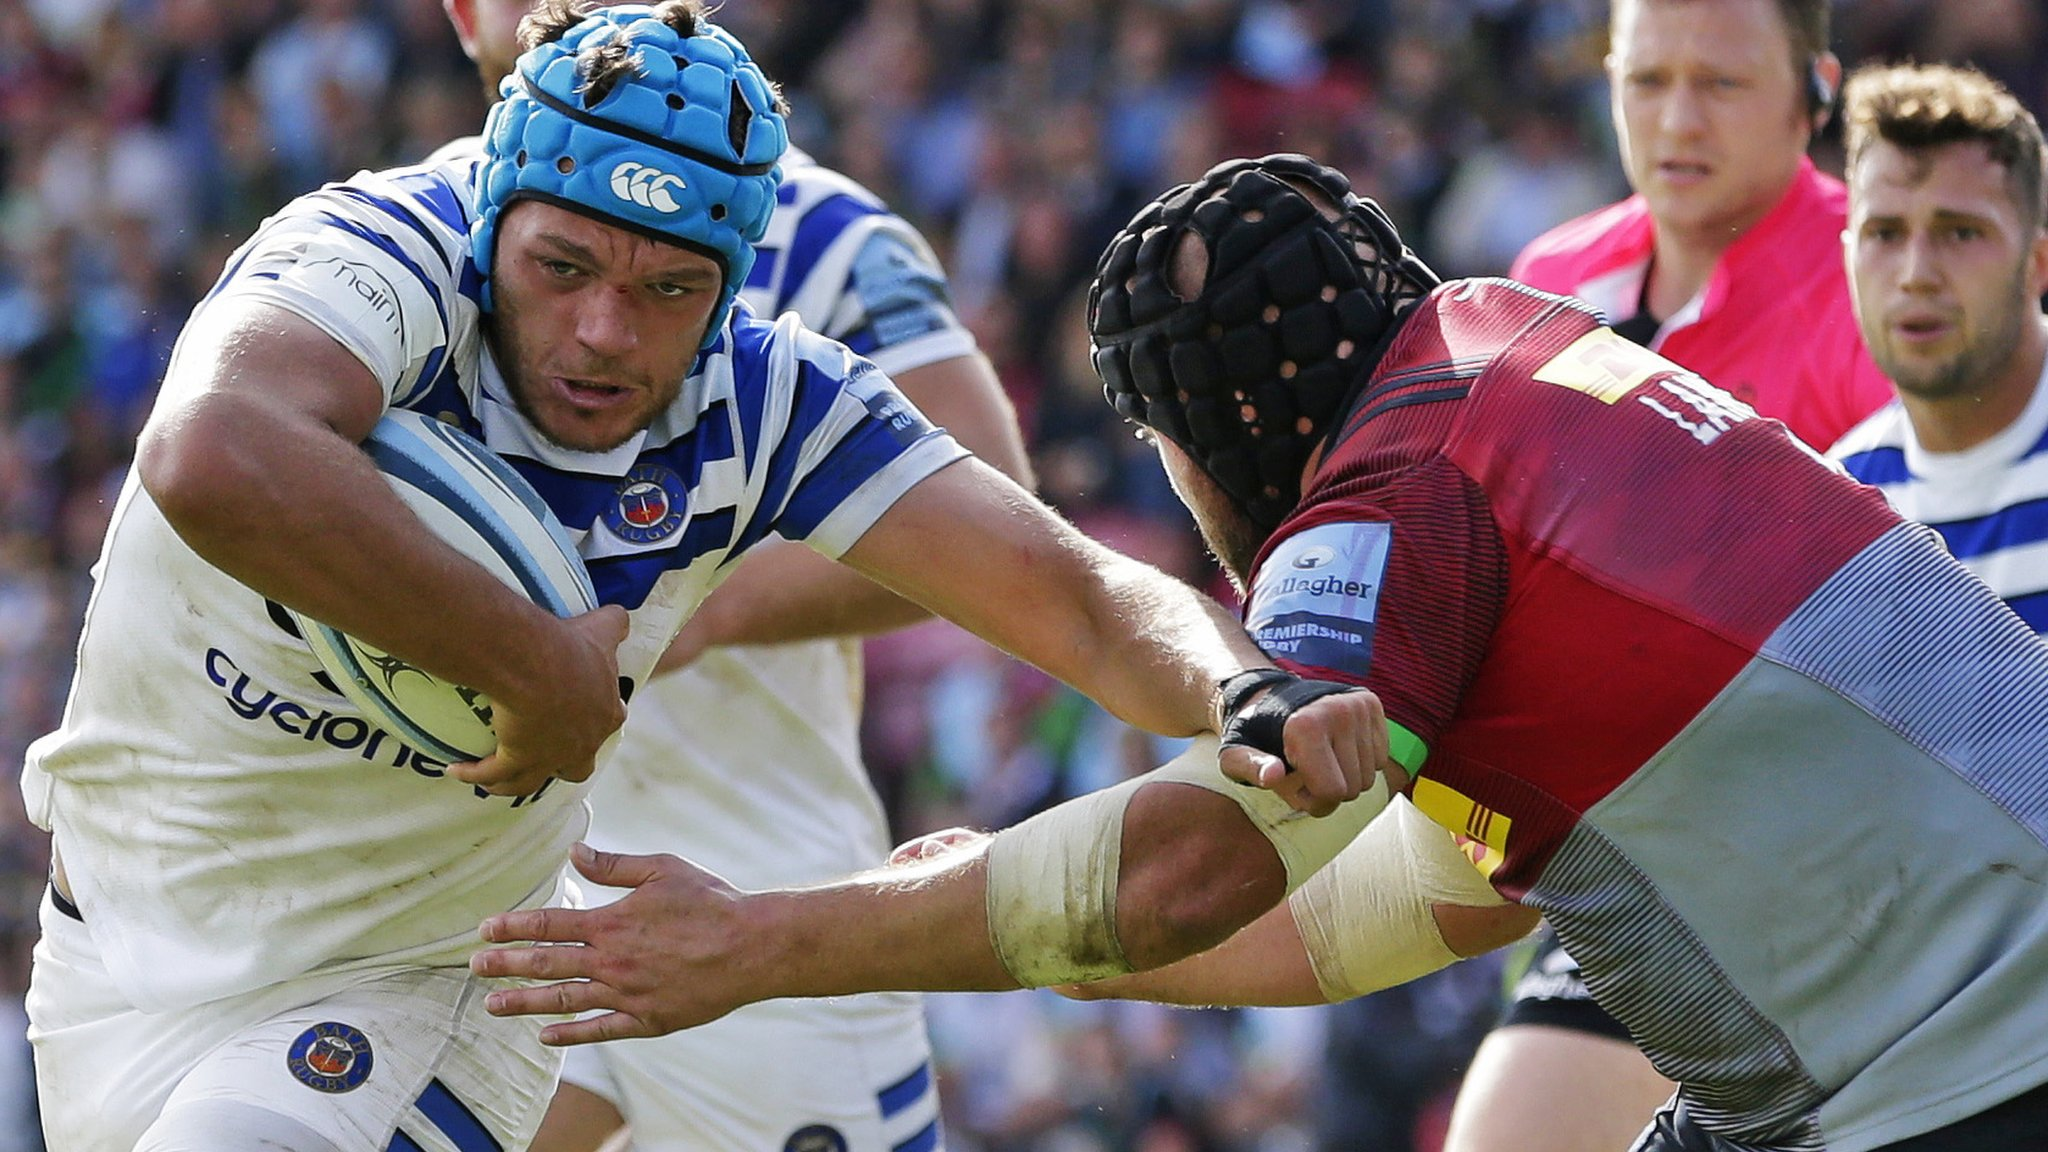 Bath hang on to beat Quins for first win of season